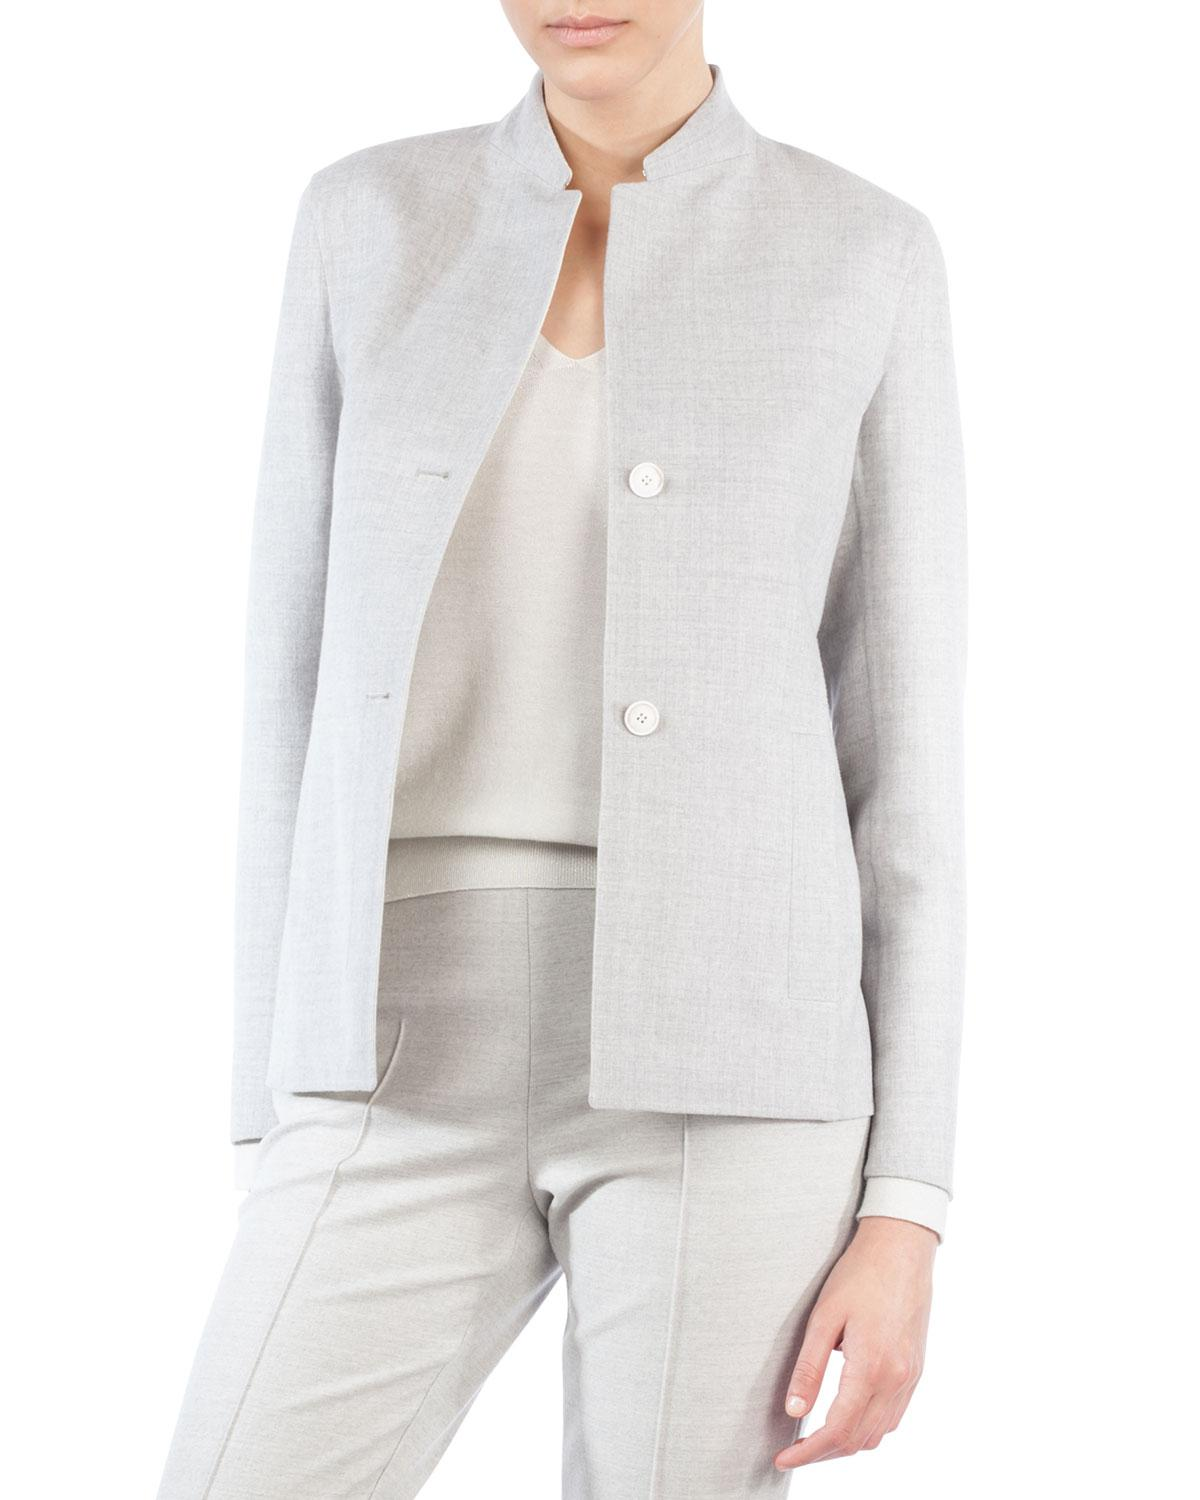 Akris Mock Neck Tweed Jacket Quality From China Cheap Latest Collections Online Discount Lowest Price Discounts ECXPCmTFd